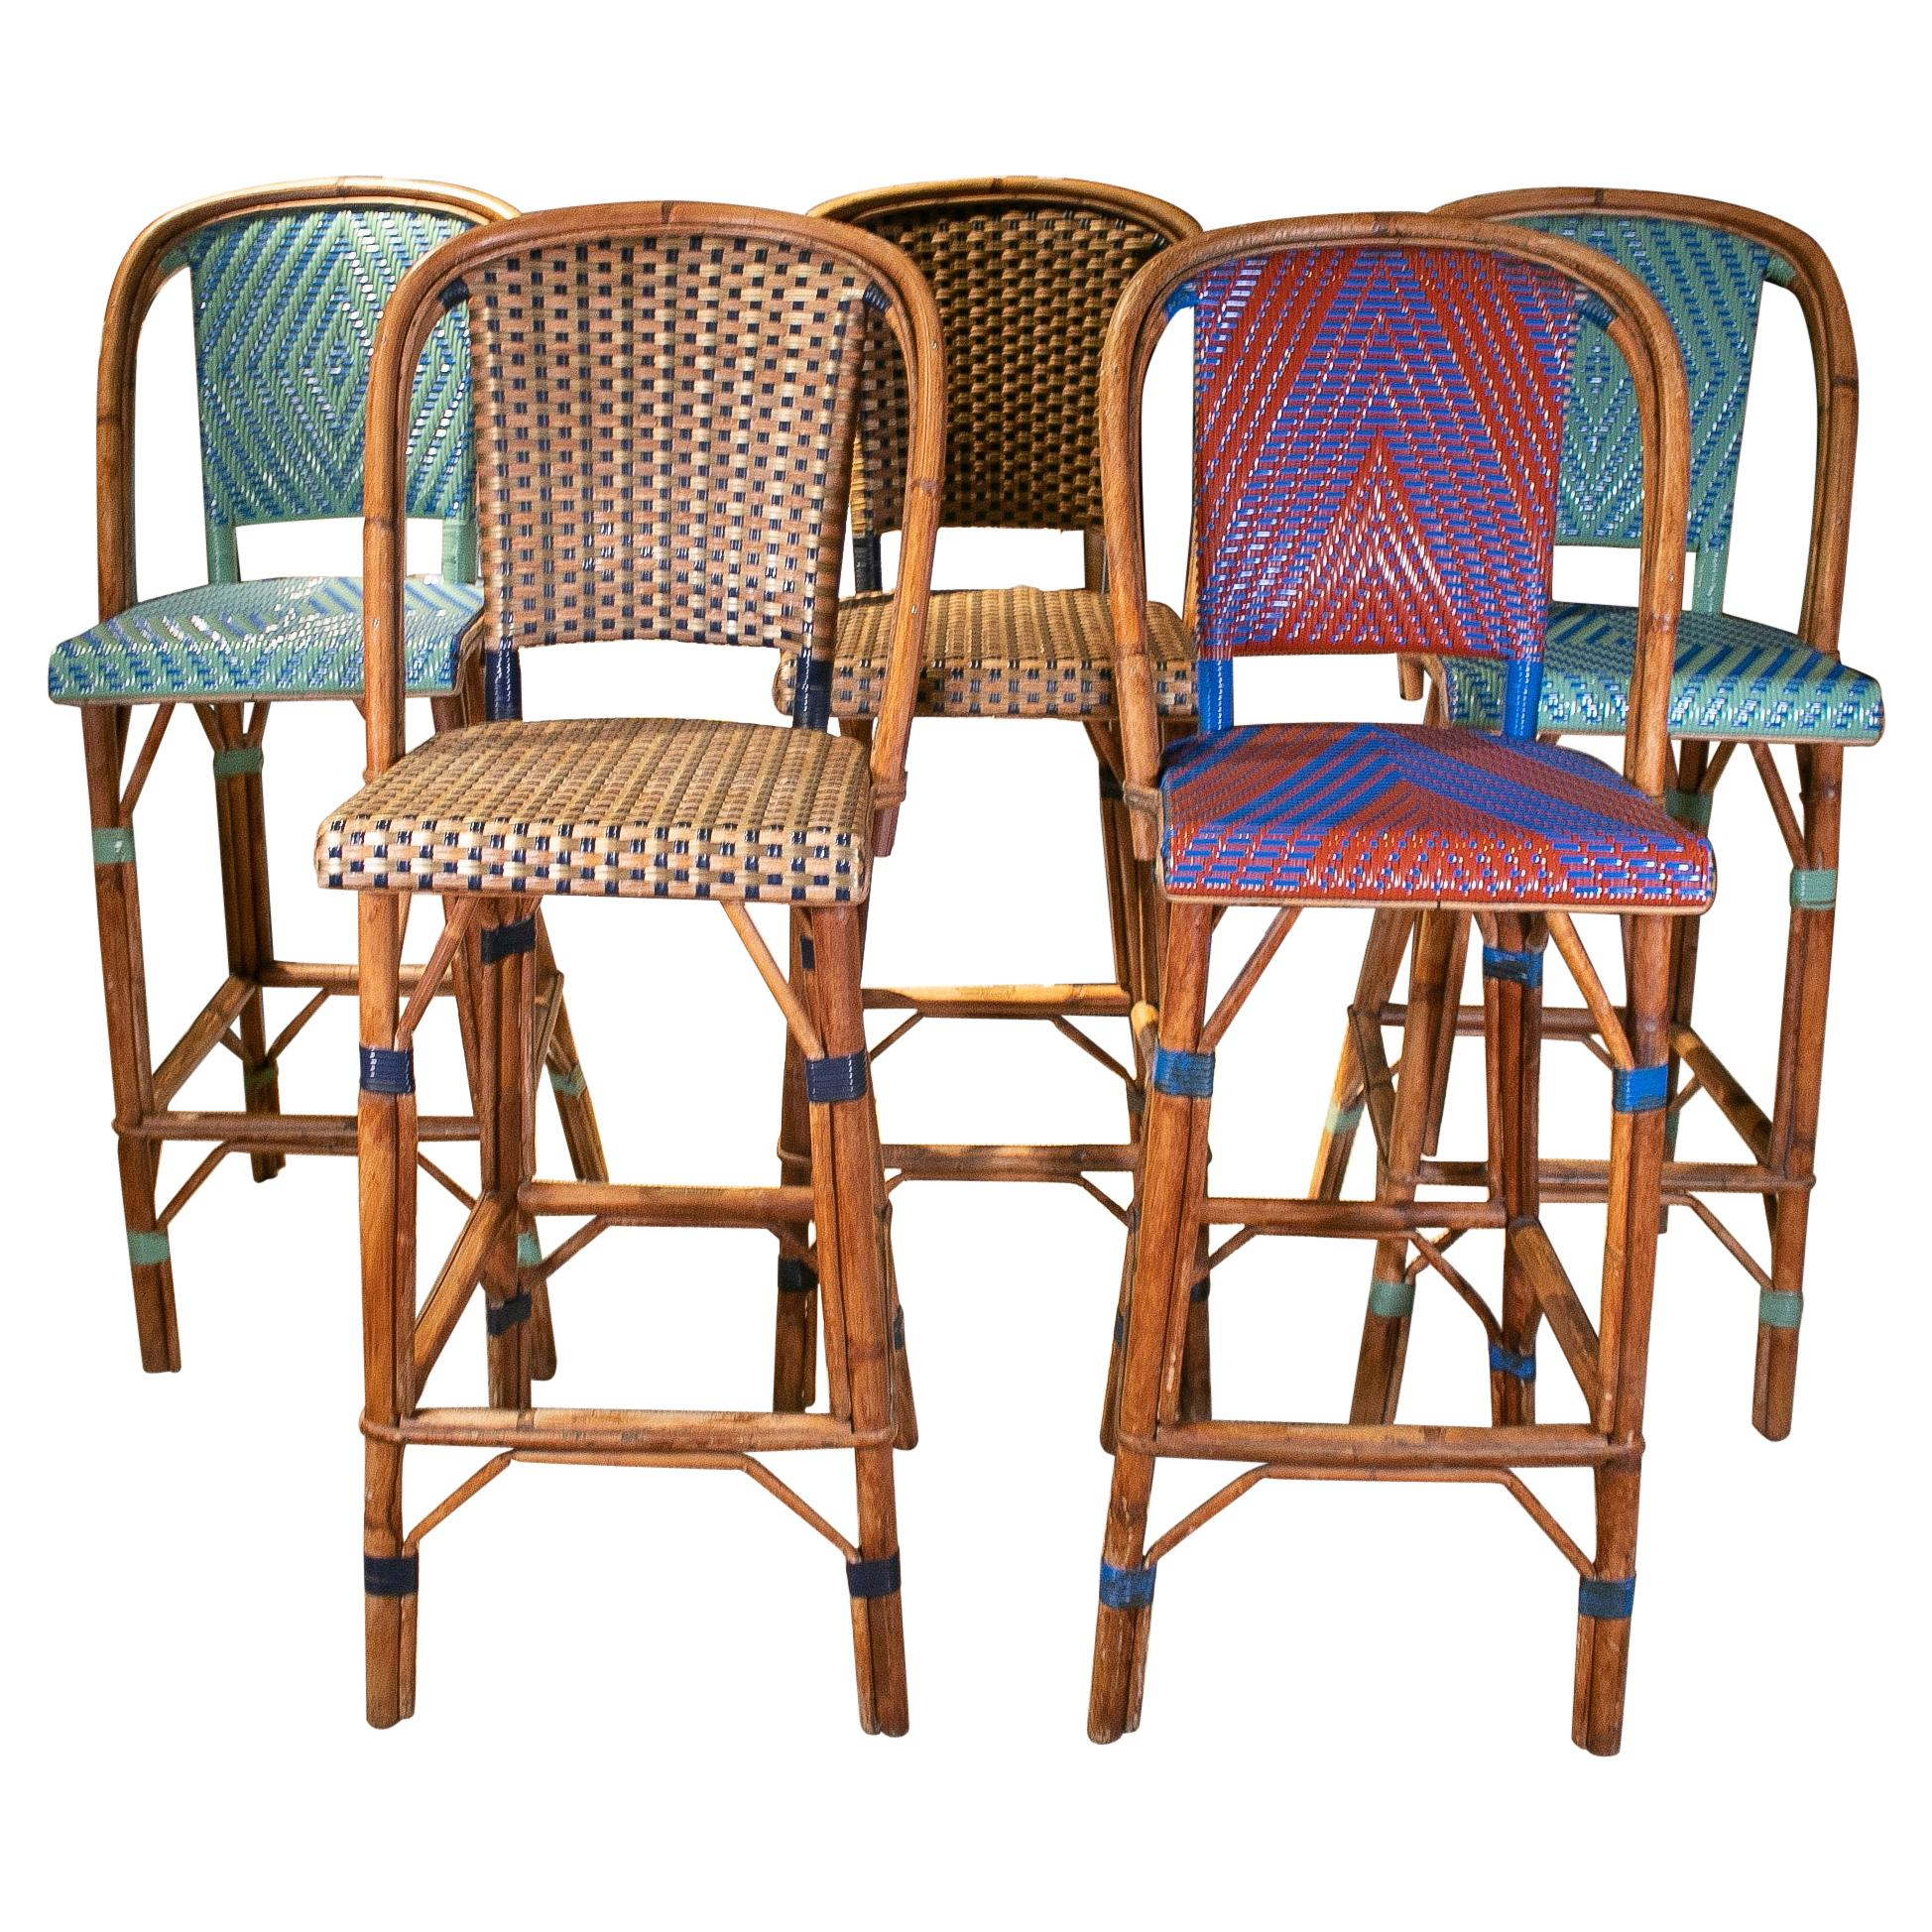 Set of 5 1990s French Woven Wicker & Bamboo Tall Stools w/ Backrest